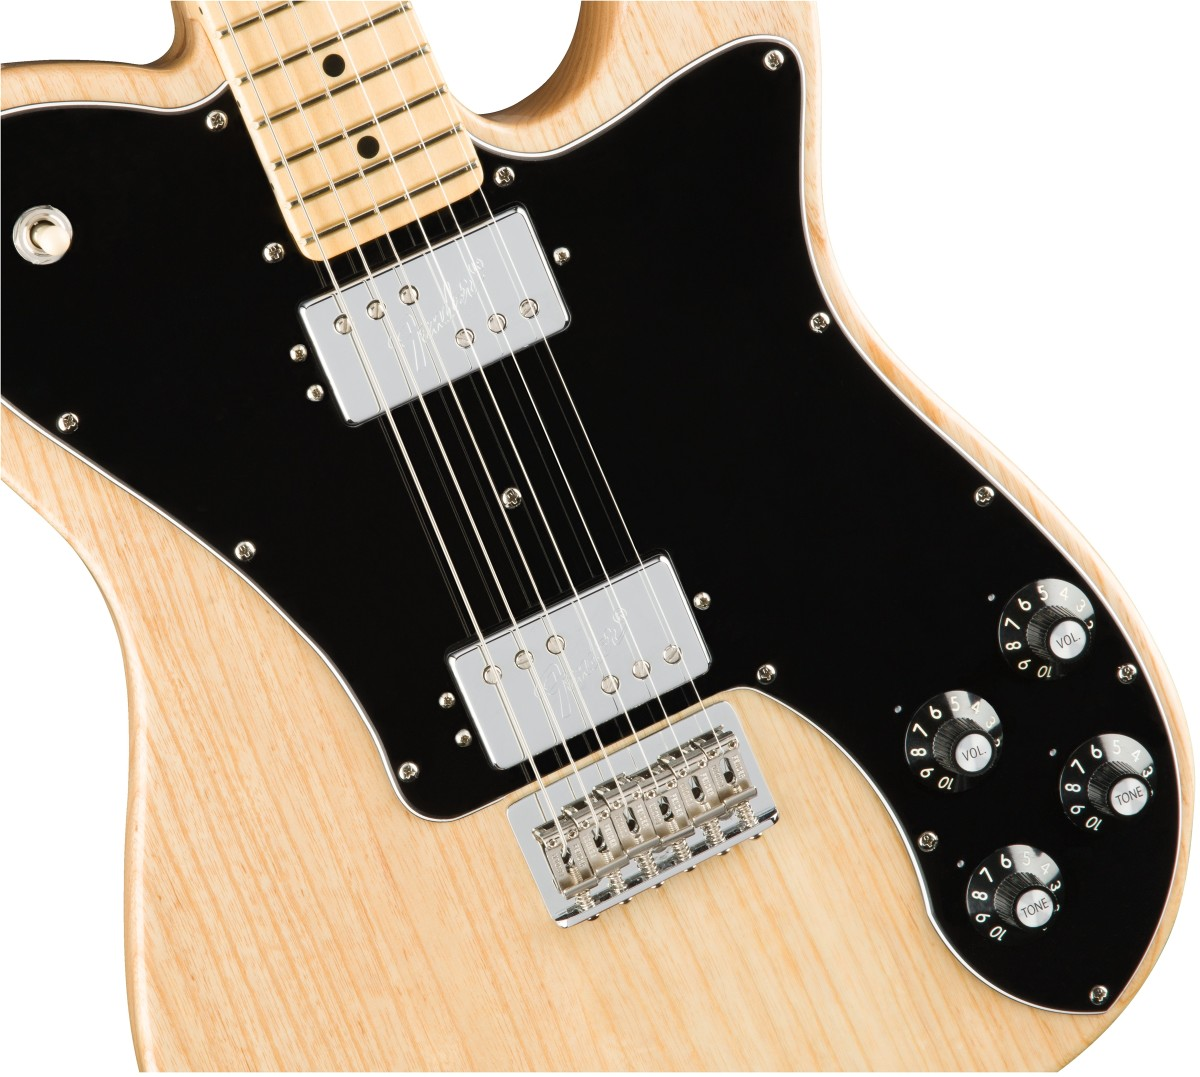 The Fender American Professional Telecaster Deluxe Hh Shawbucker Vs Tapped Tele 5 Way Switch Wiring Diagram Gibson Les Paul Studio Traditional Spinditty